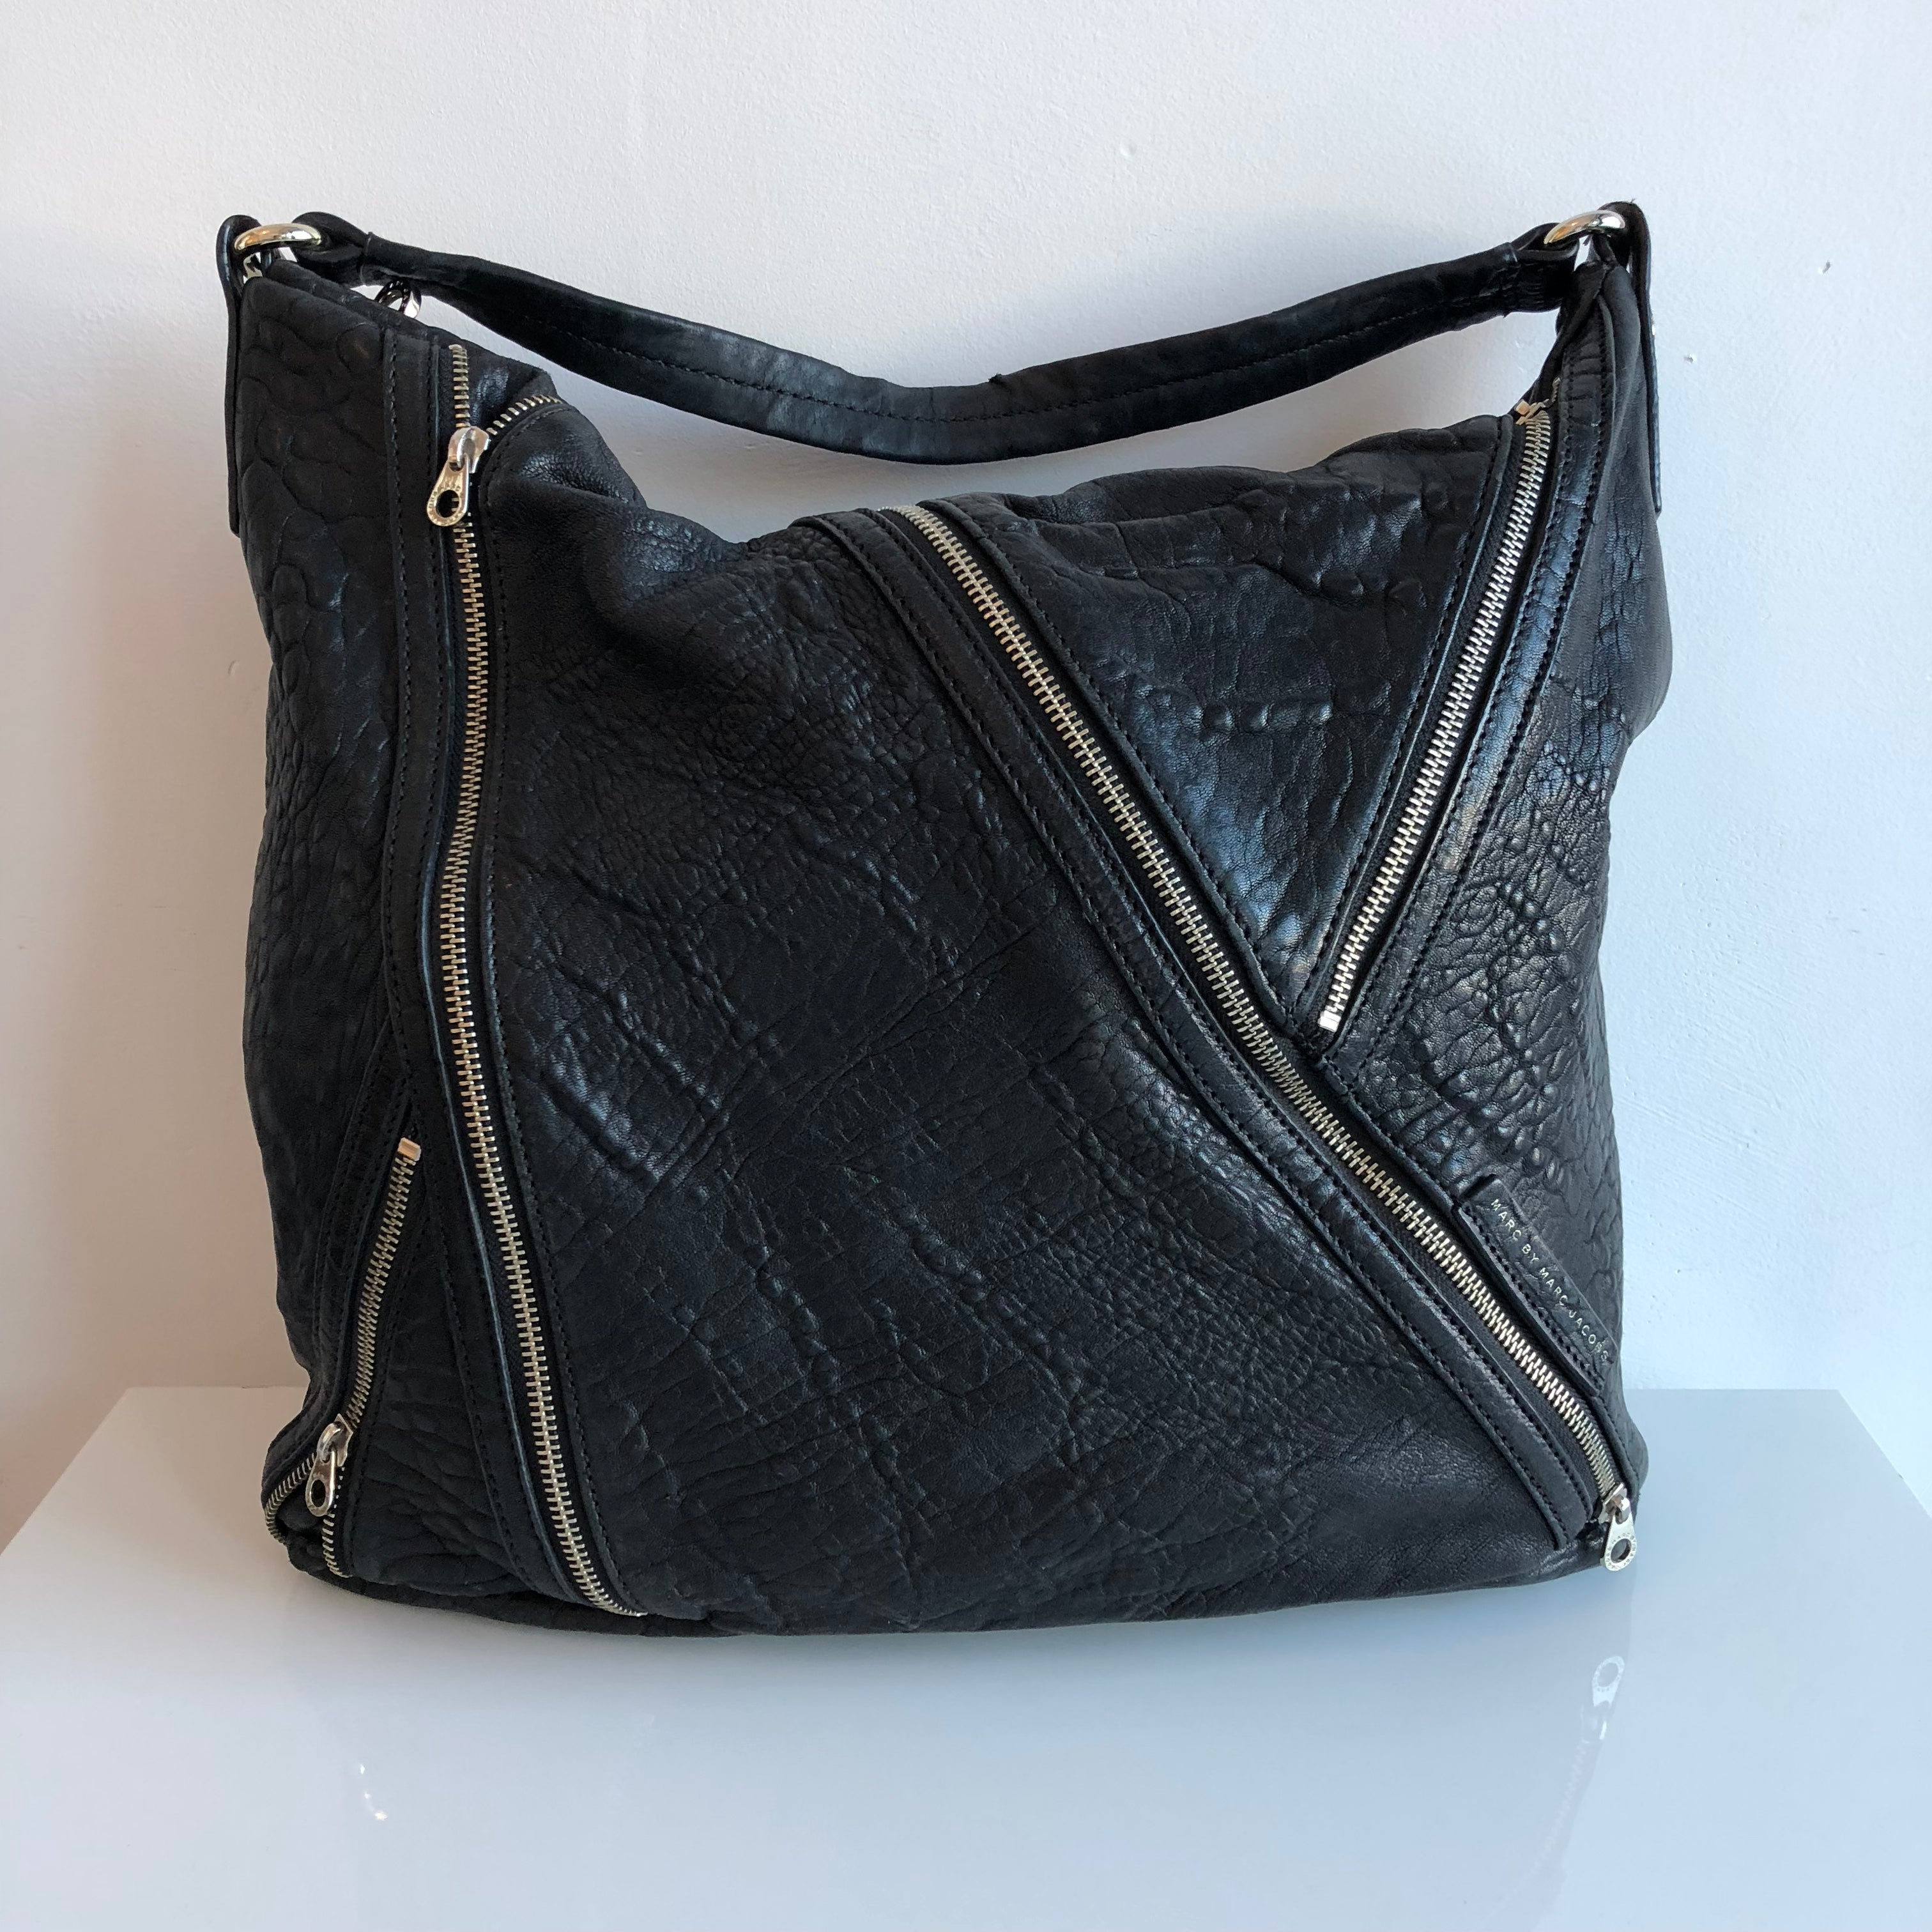 Authentic MARC BY MARC JACOBS Black Zippy Tote